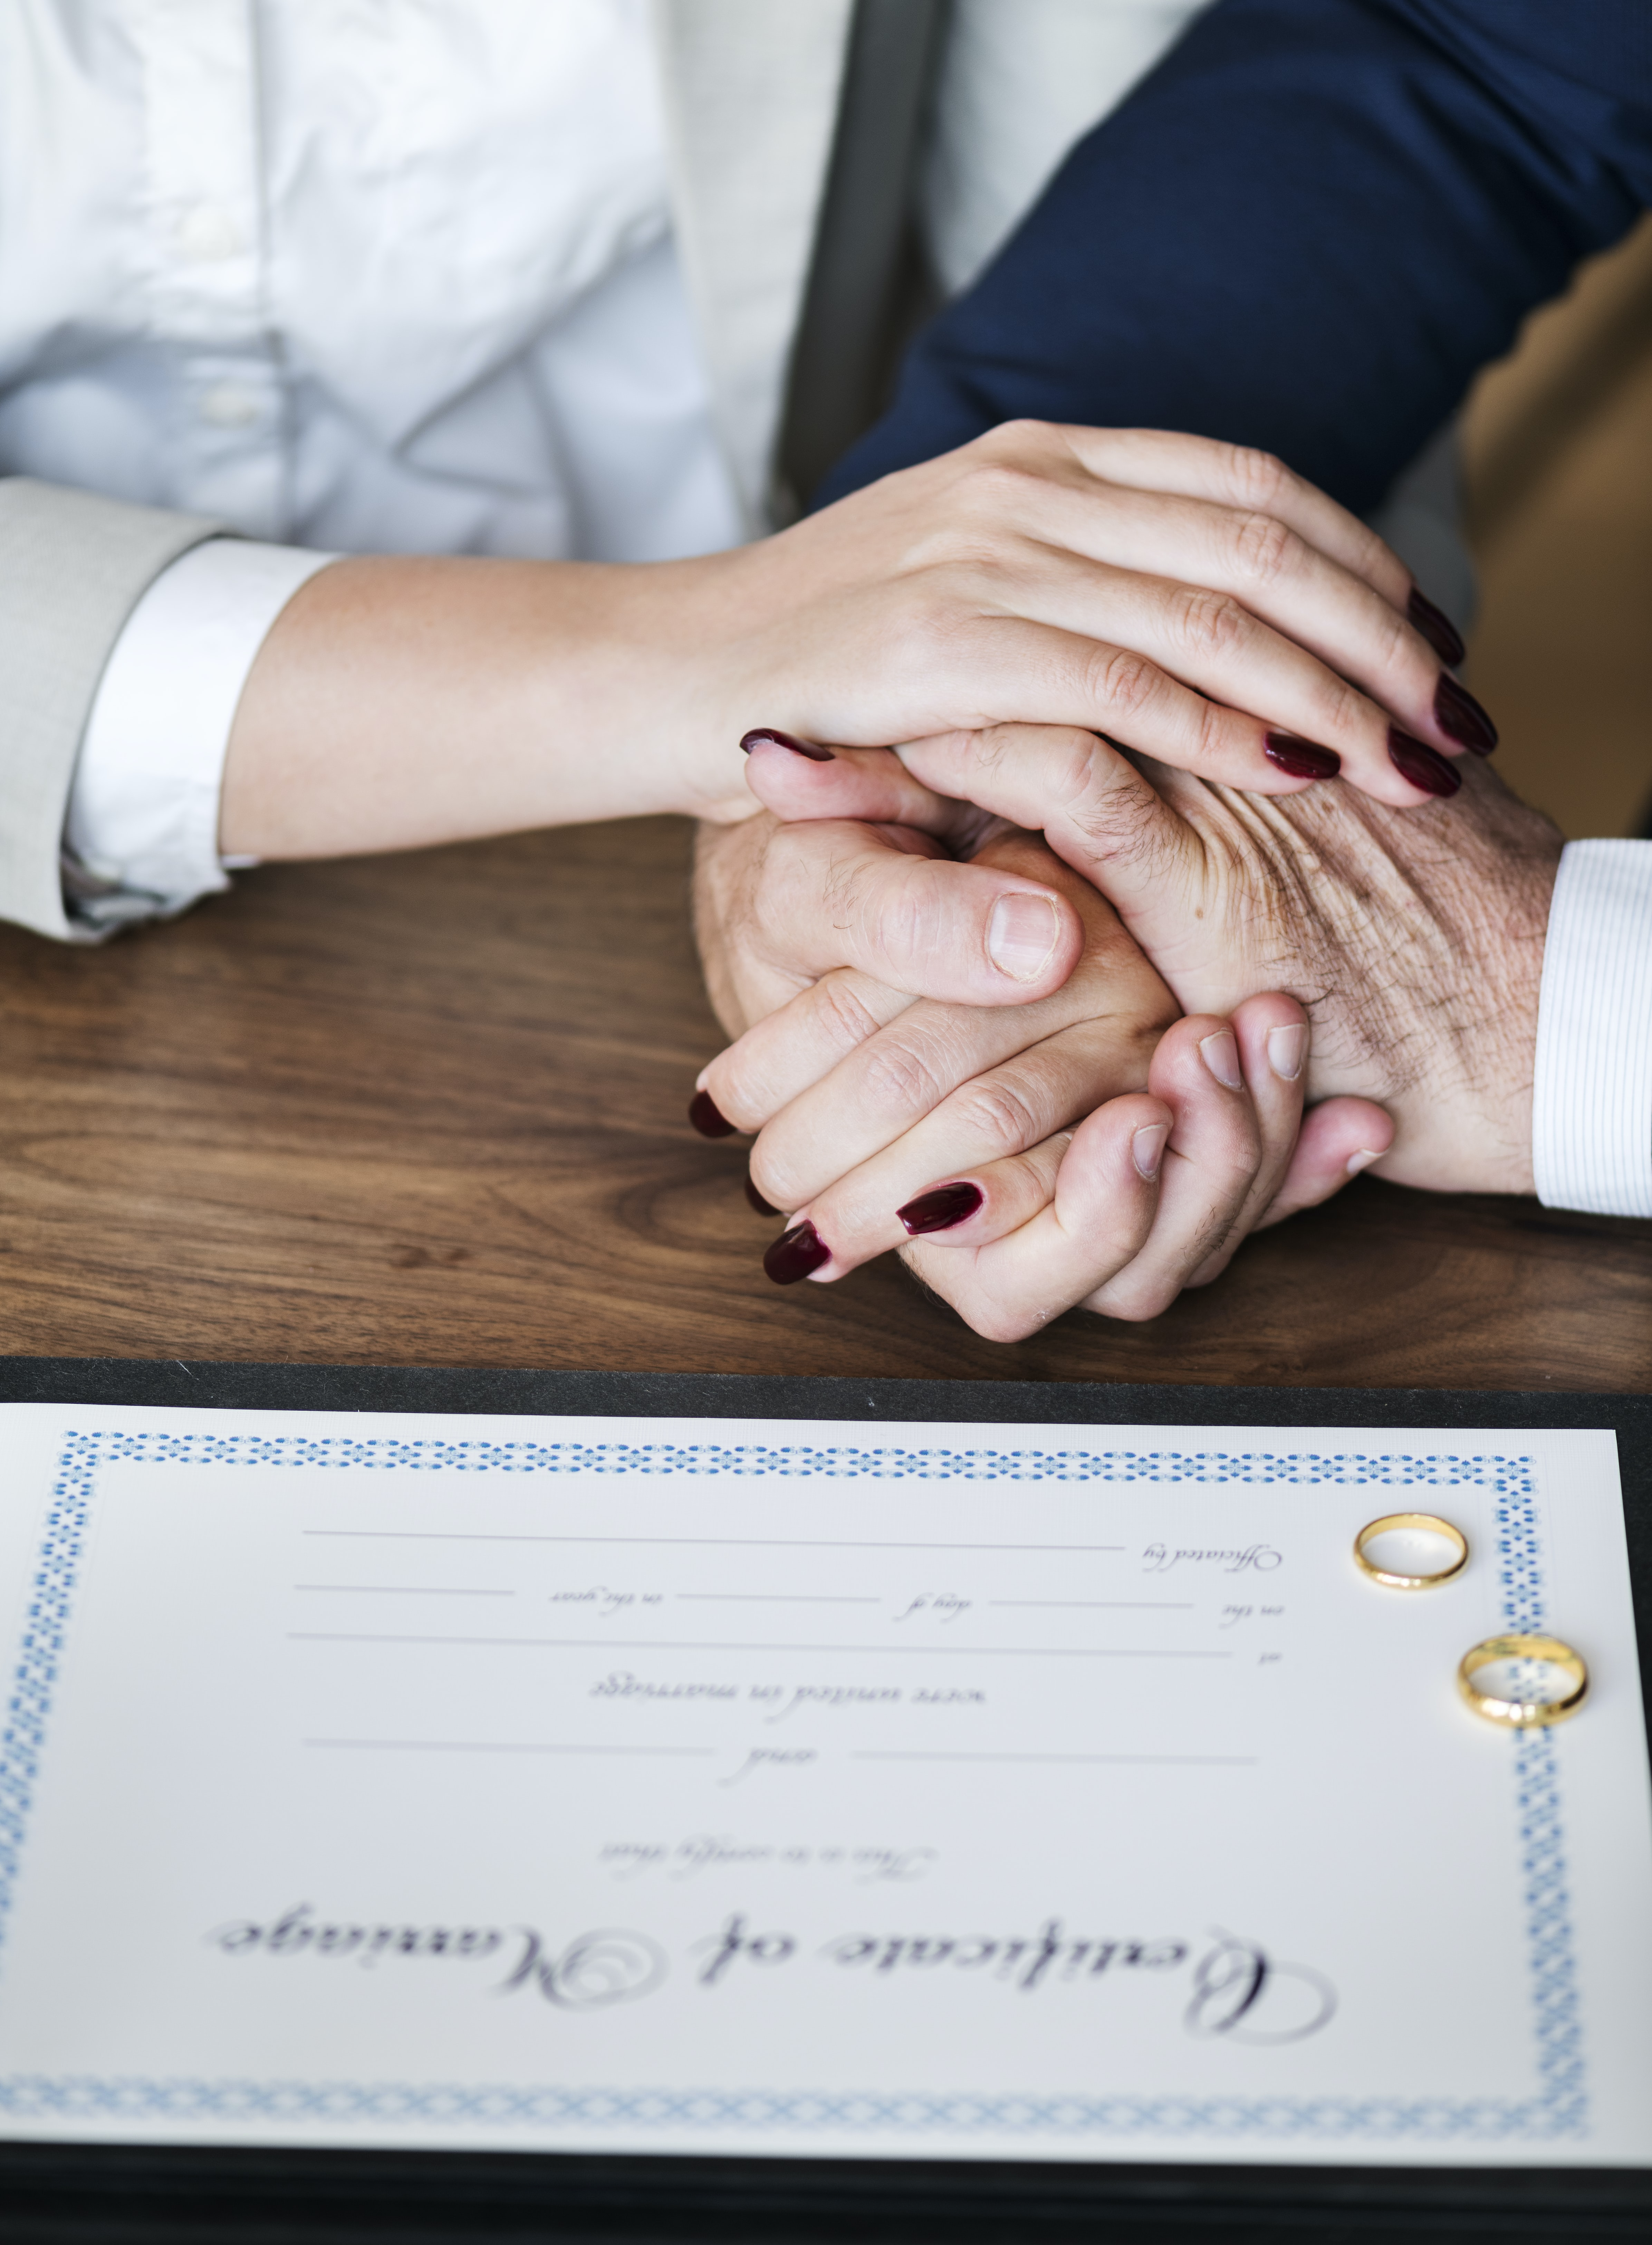 person clasp hands beside marriage certificate and wedding bonds